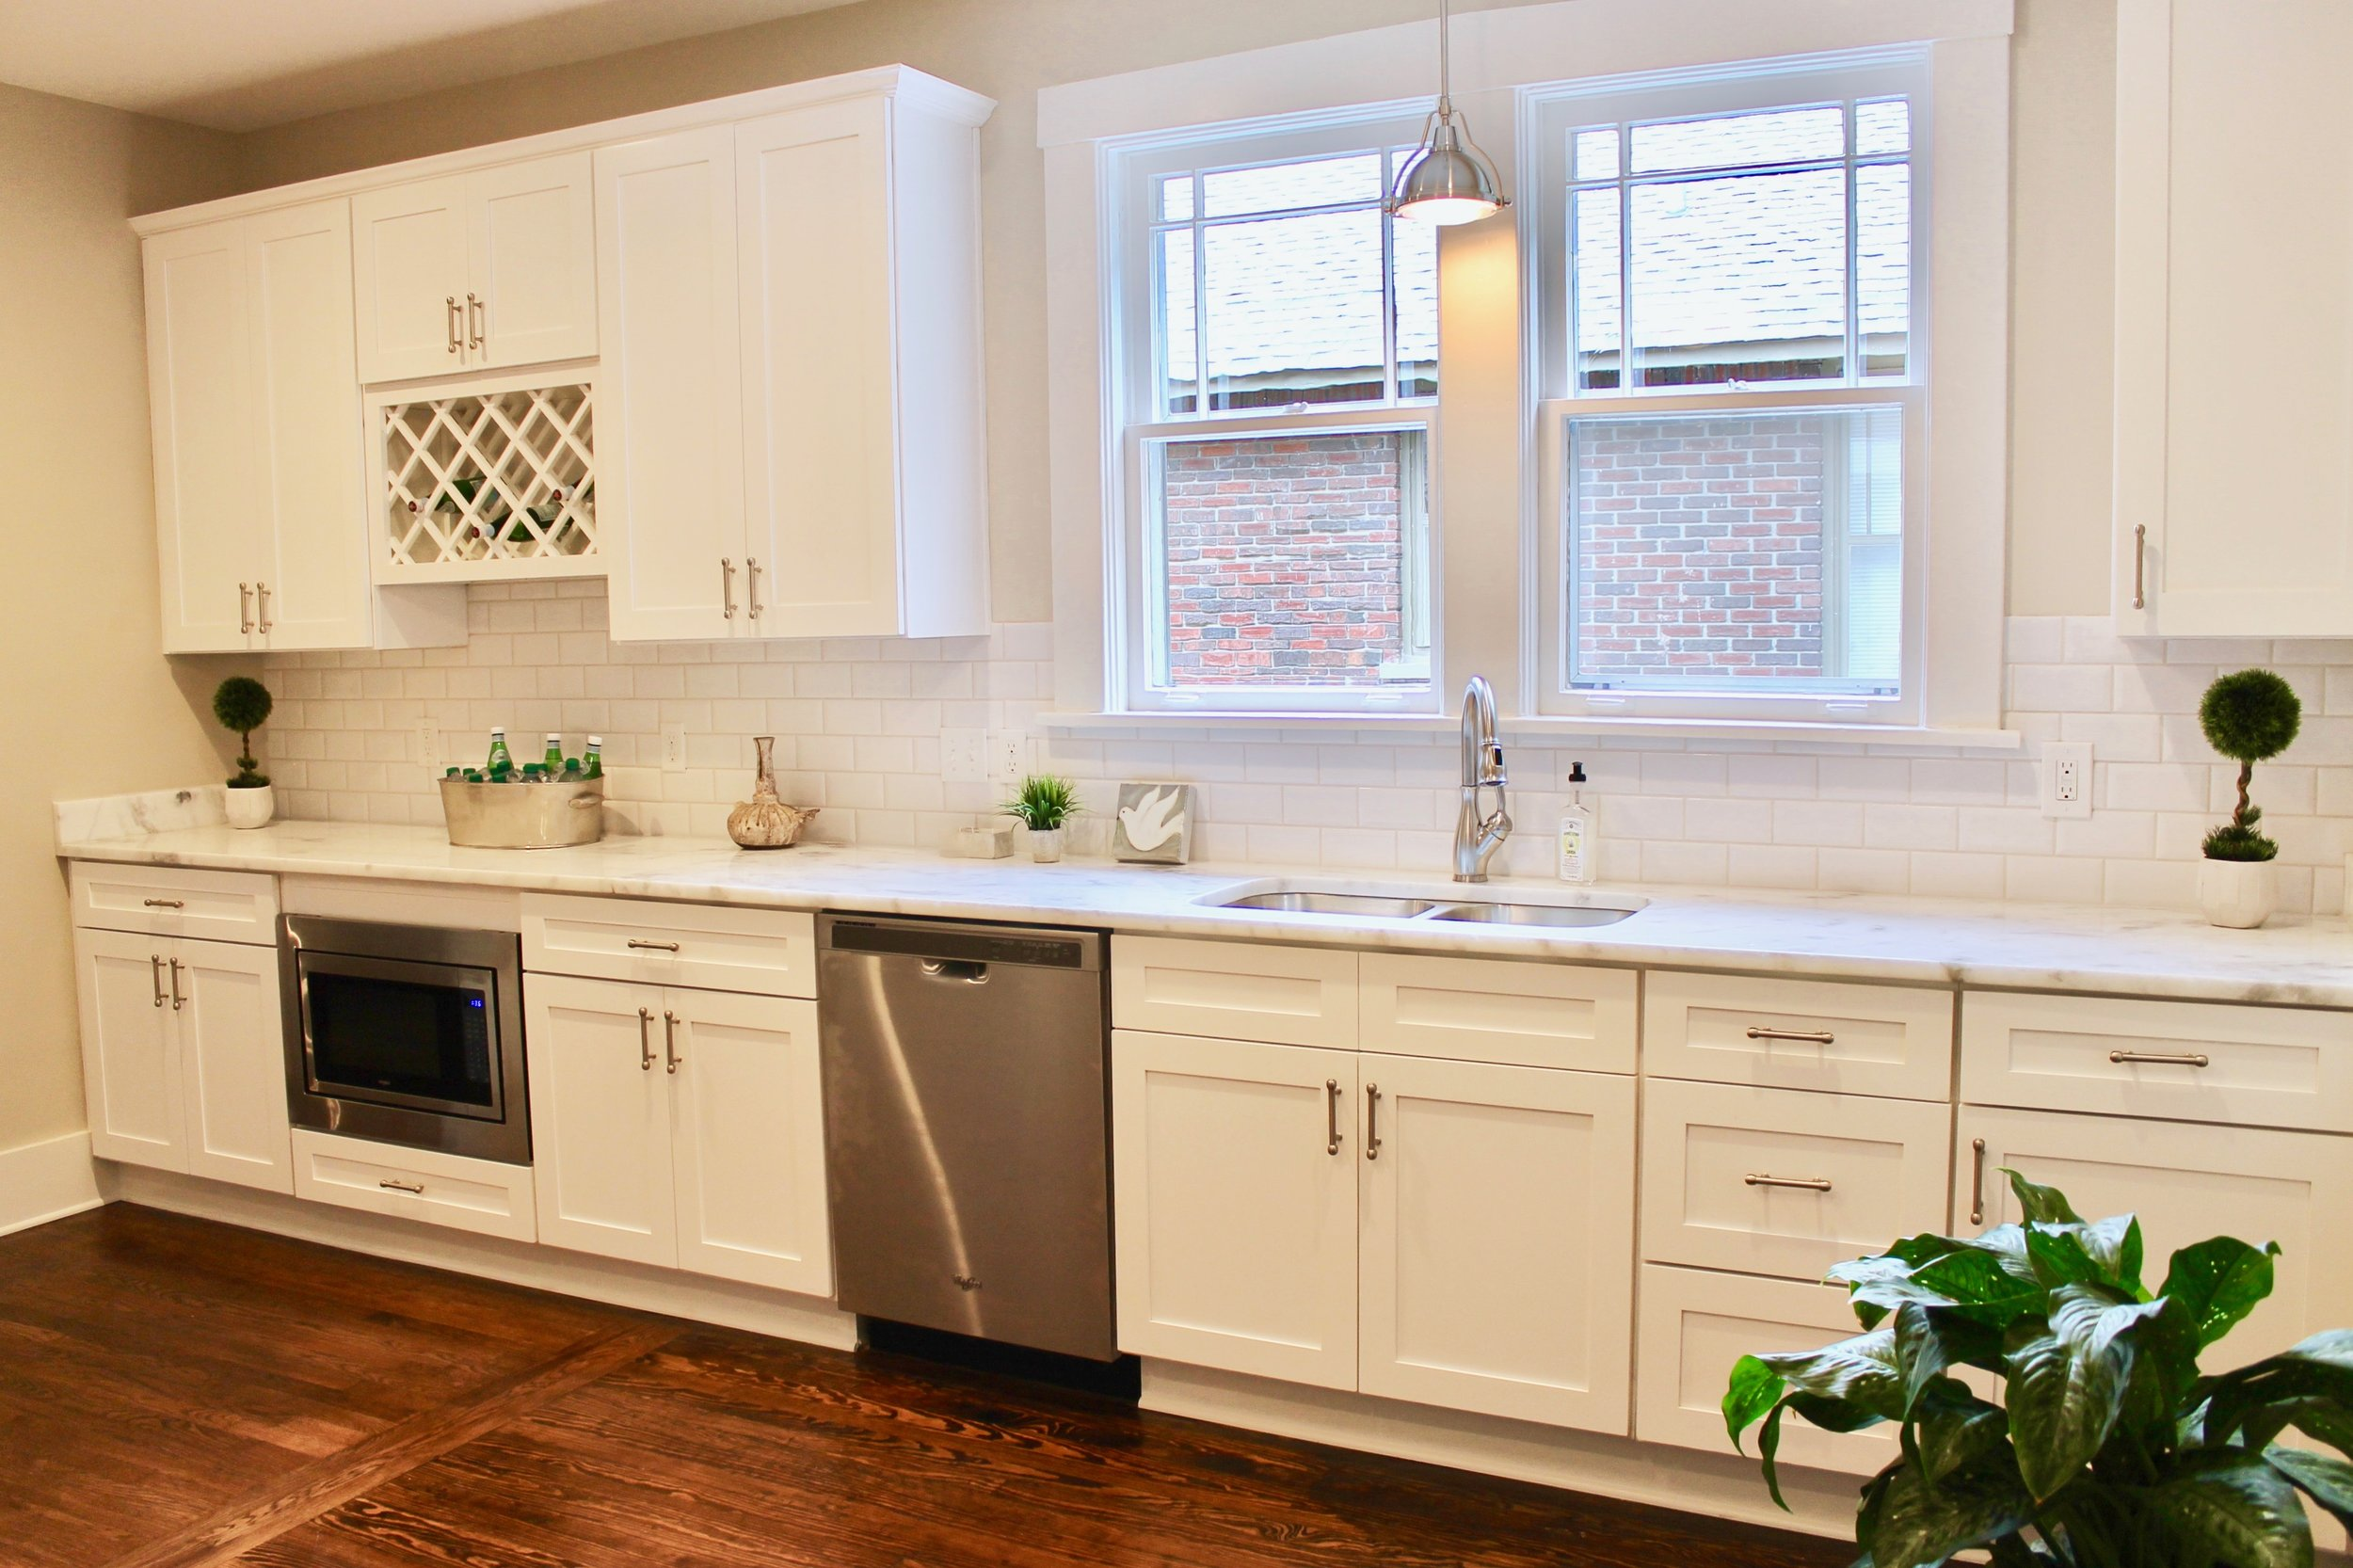 Prime Design Memphis, LLC - White kitchen, beveled subway tiles, shaker cabinets, hardwood floors, wine rack